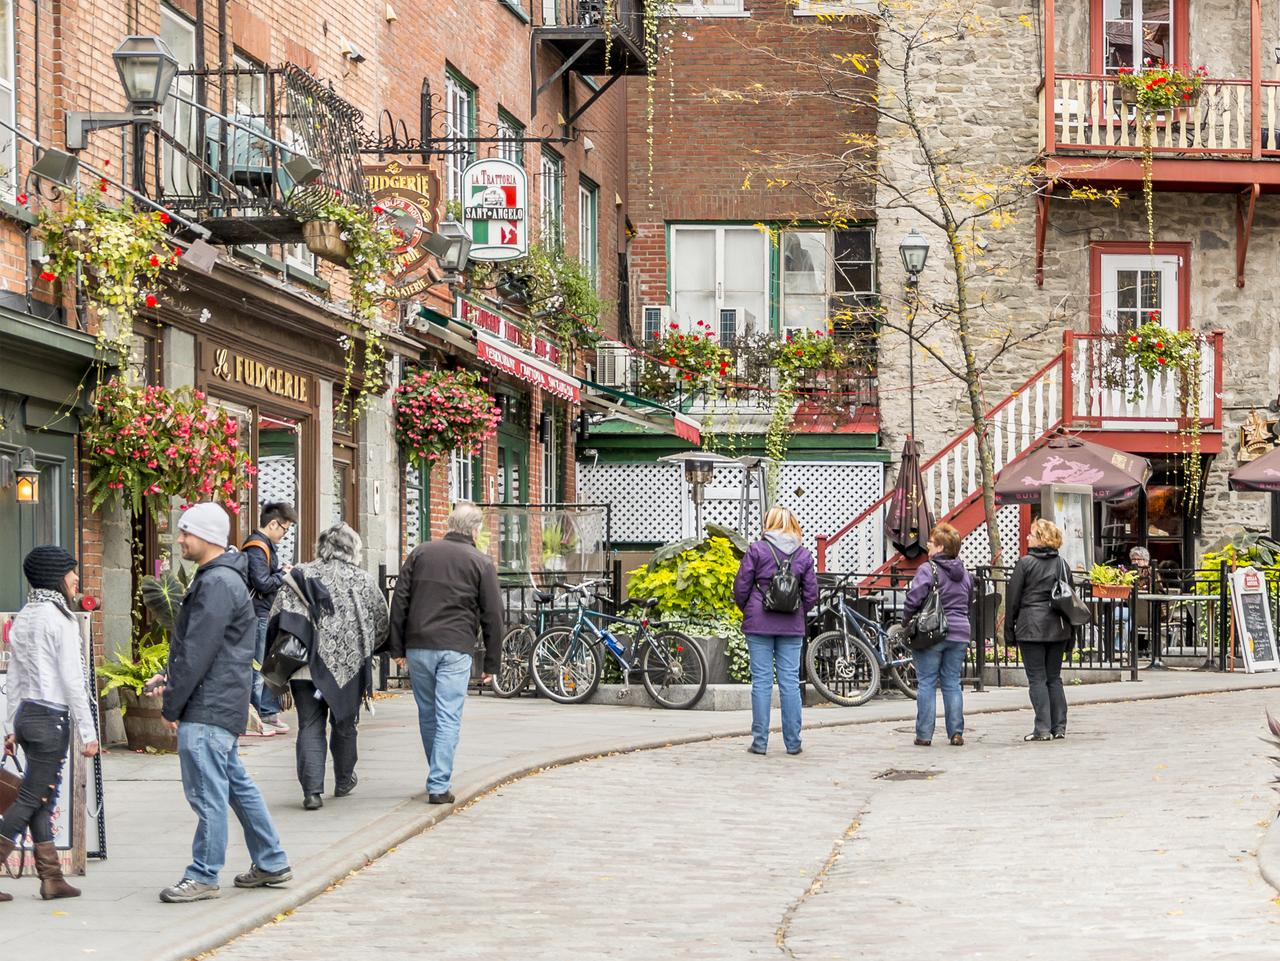 Quebec City, Canada - October 6, 2013: Shoppers strolling along Rue du Cul de Sac in the Quartier Petit Champlain in old town Quebec City.